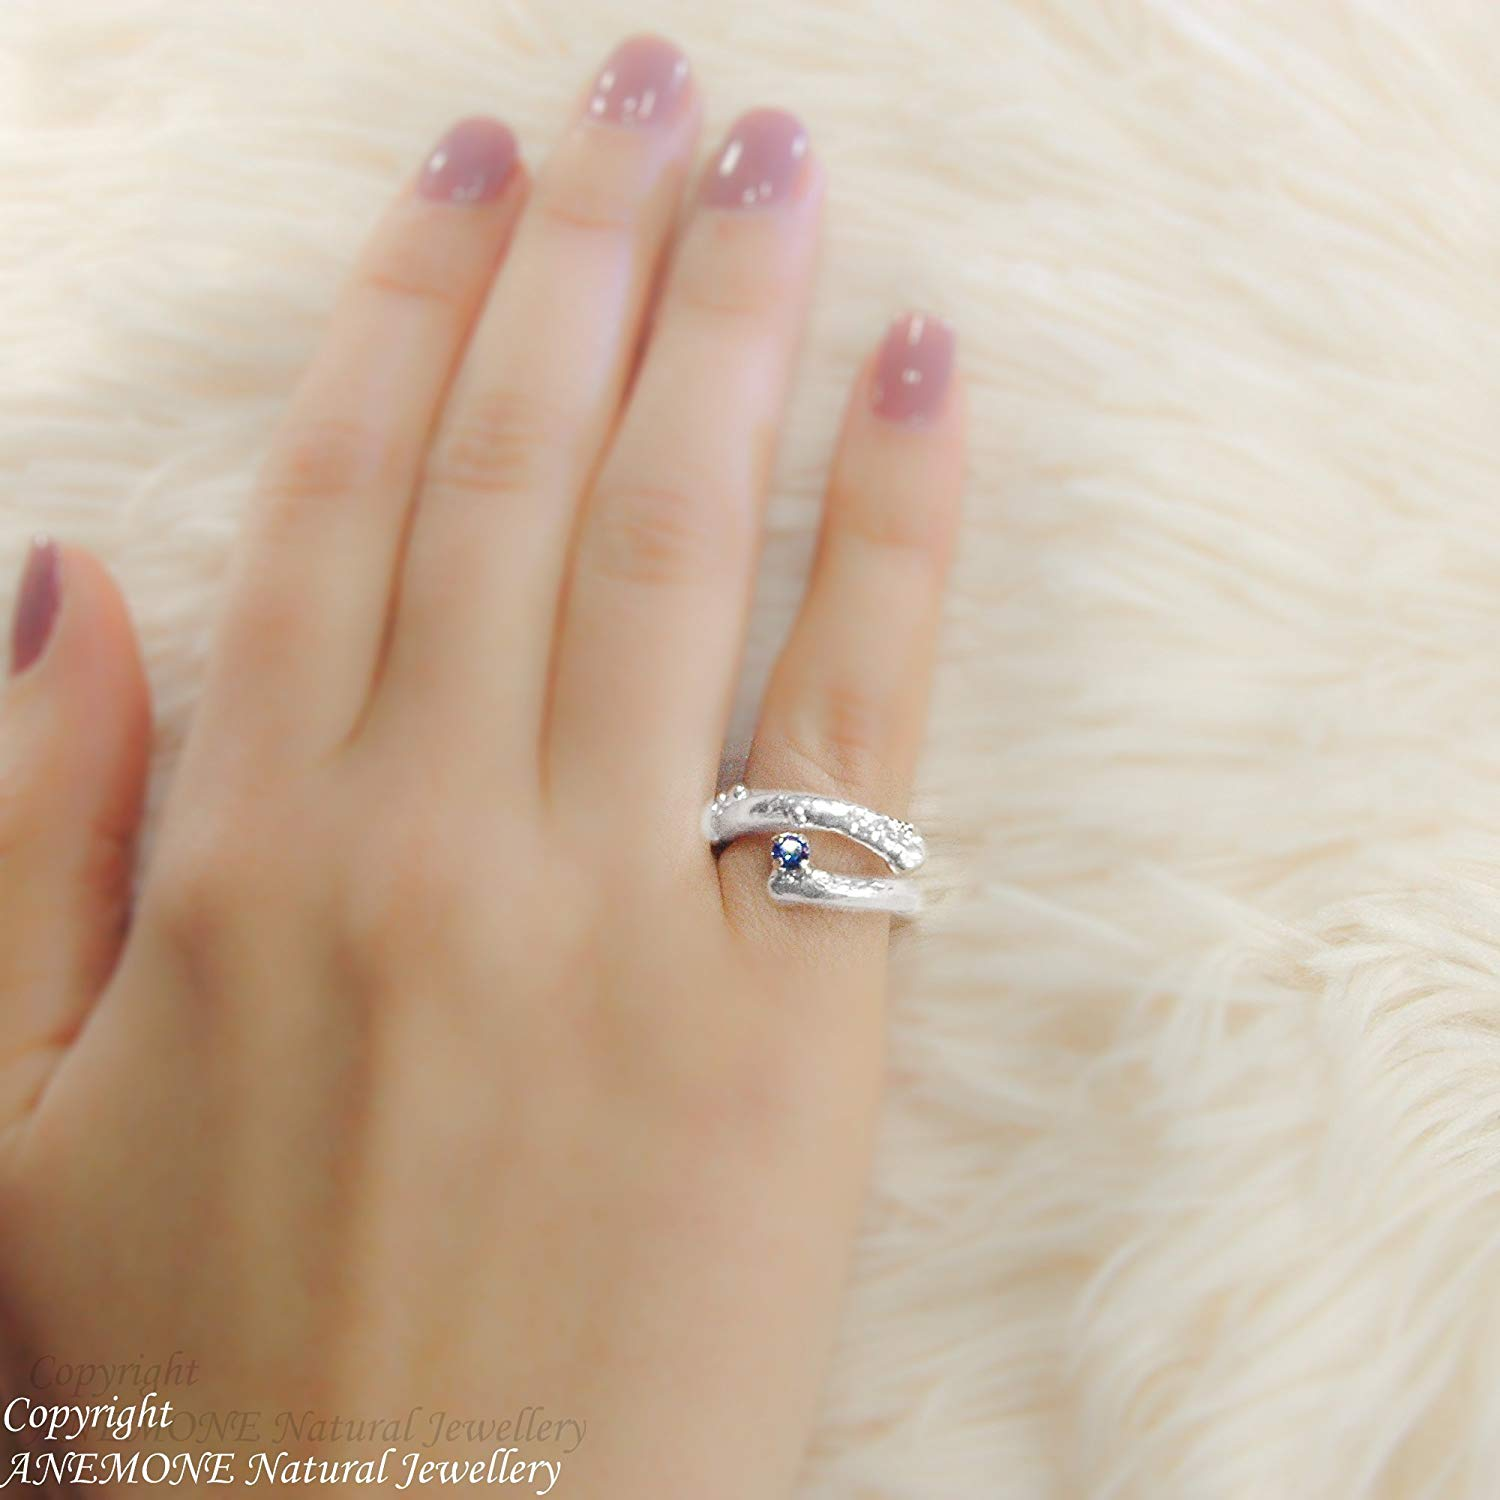 Handmade Twig, Greek Nature Inspired, Semi-precious , 4-prong basket setting, Open, one size, Adjustable Ring, for Midi, Chevalier, Knuckle ring